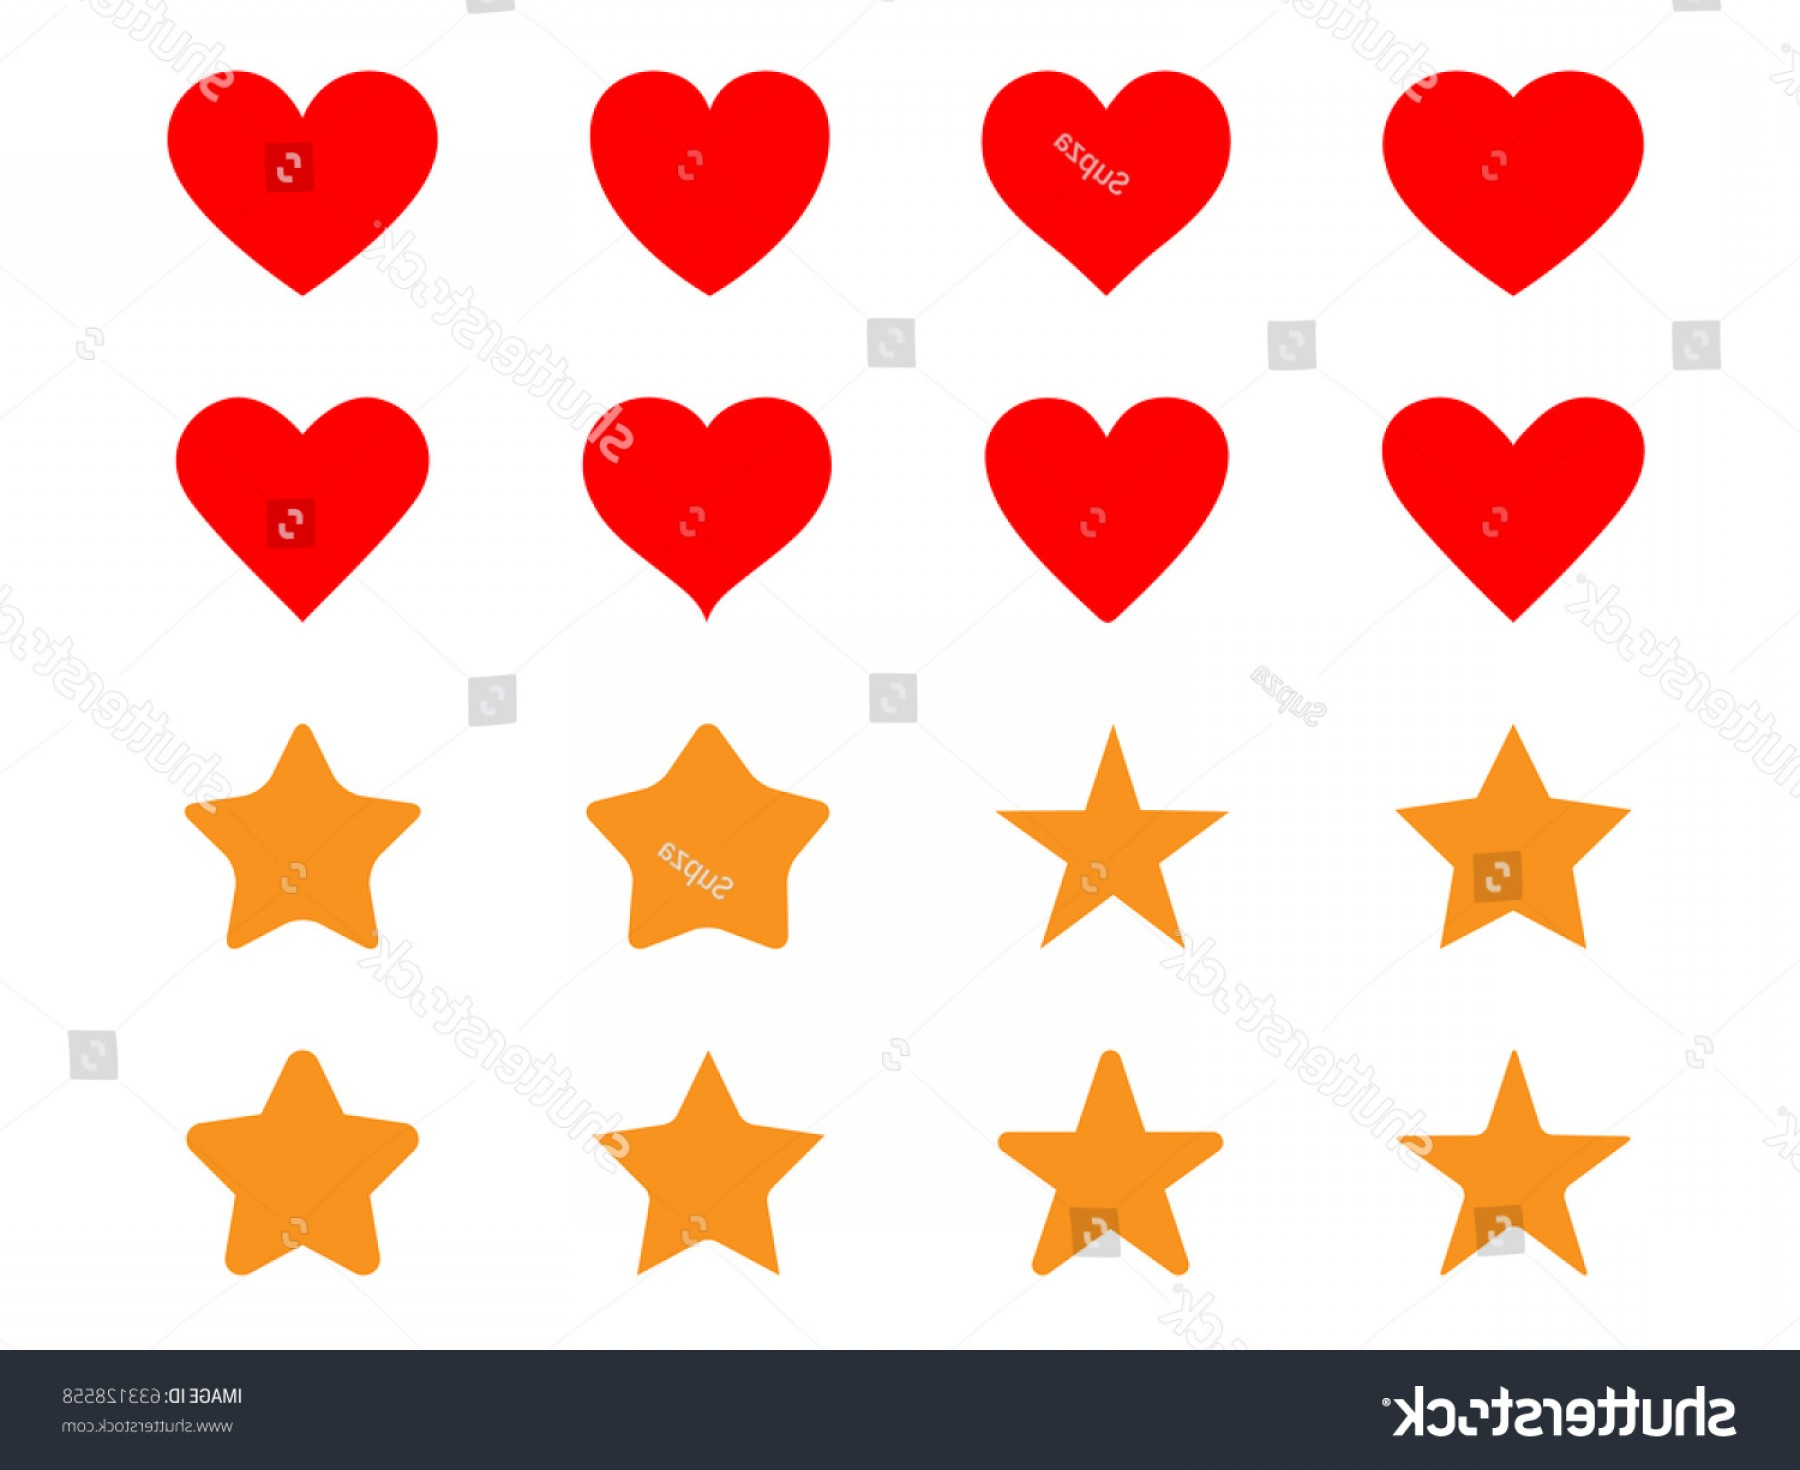 Vectors Heart And Star: Set Simple Heart Star Icon